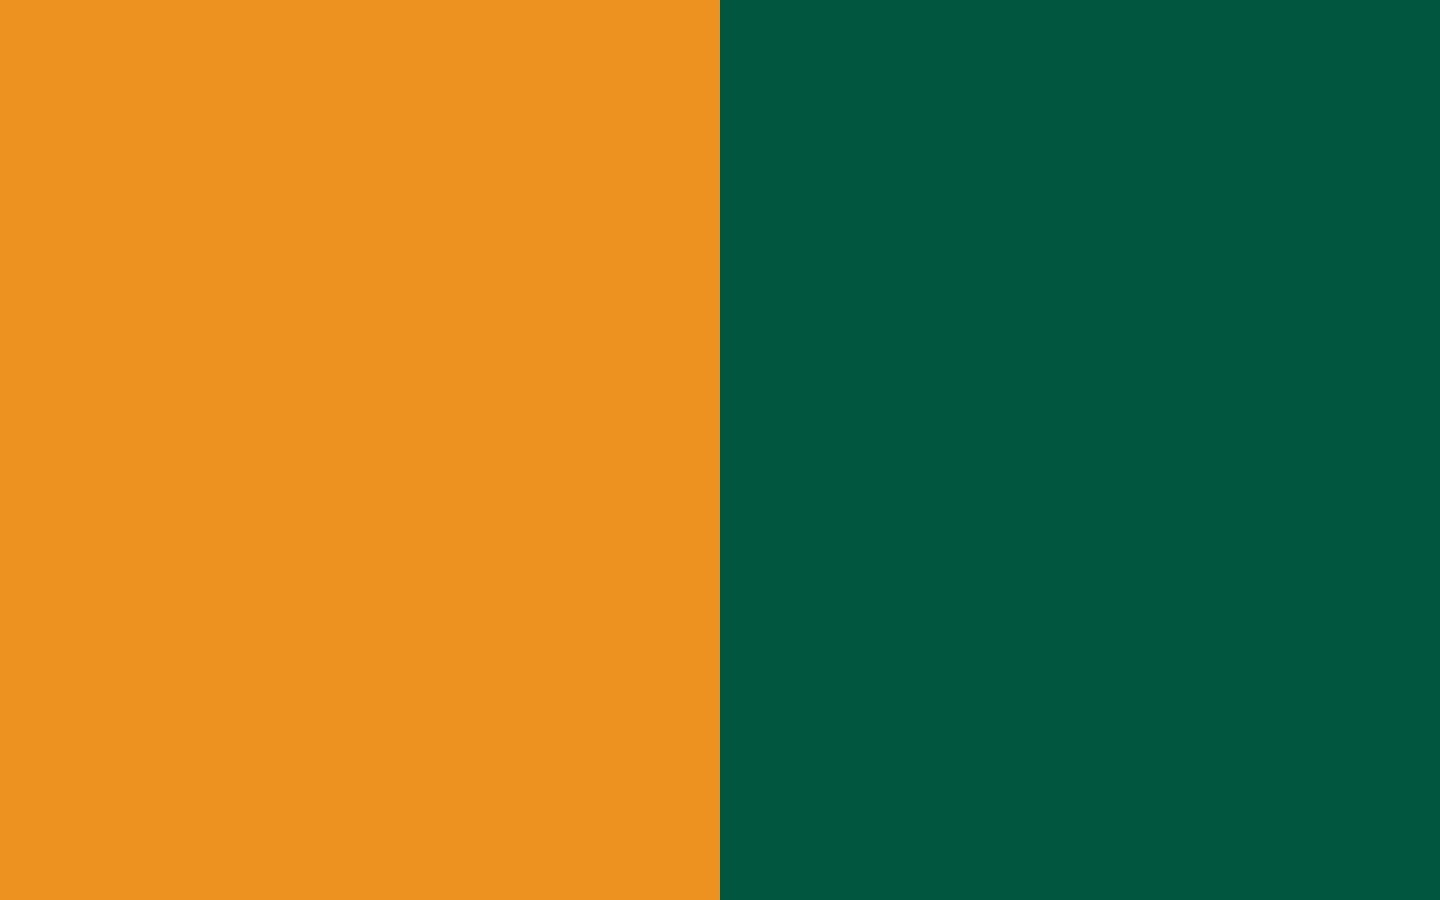 Carrot Orange and Castleton Green solid two color background 1440x900